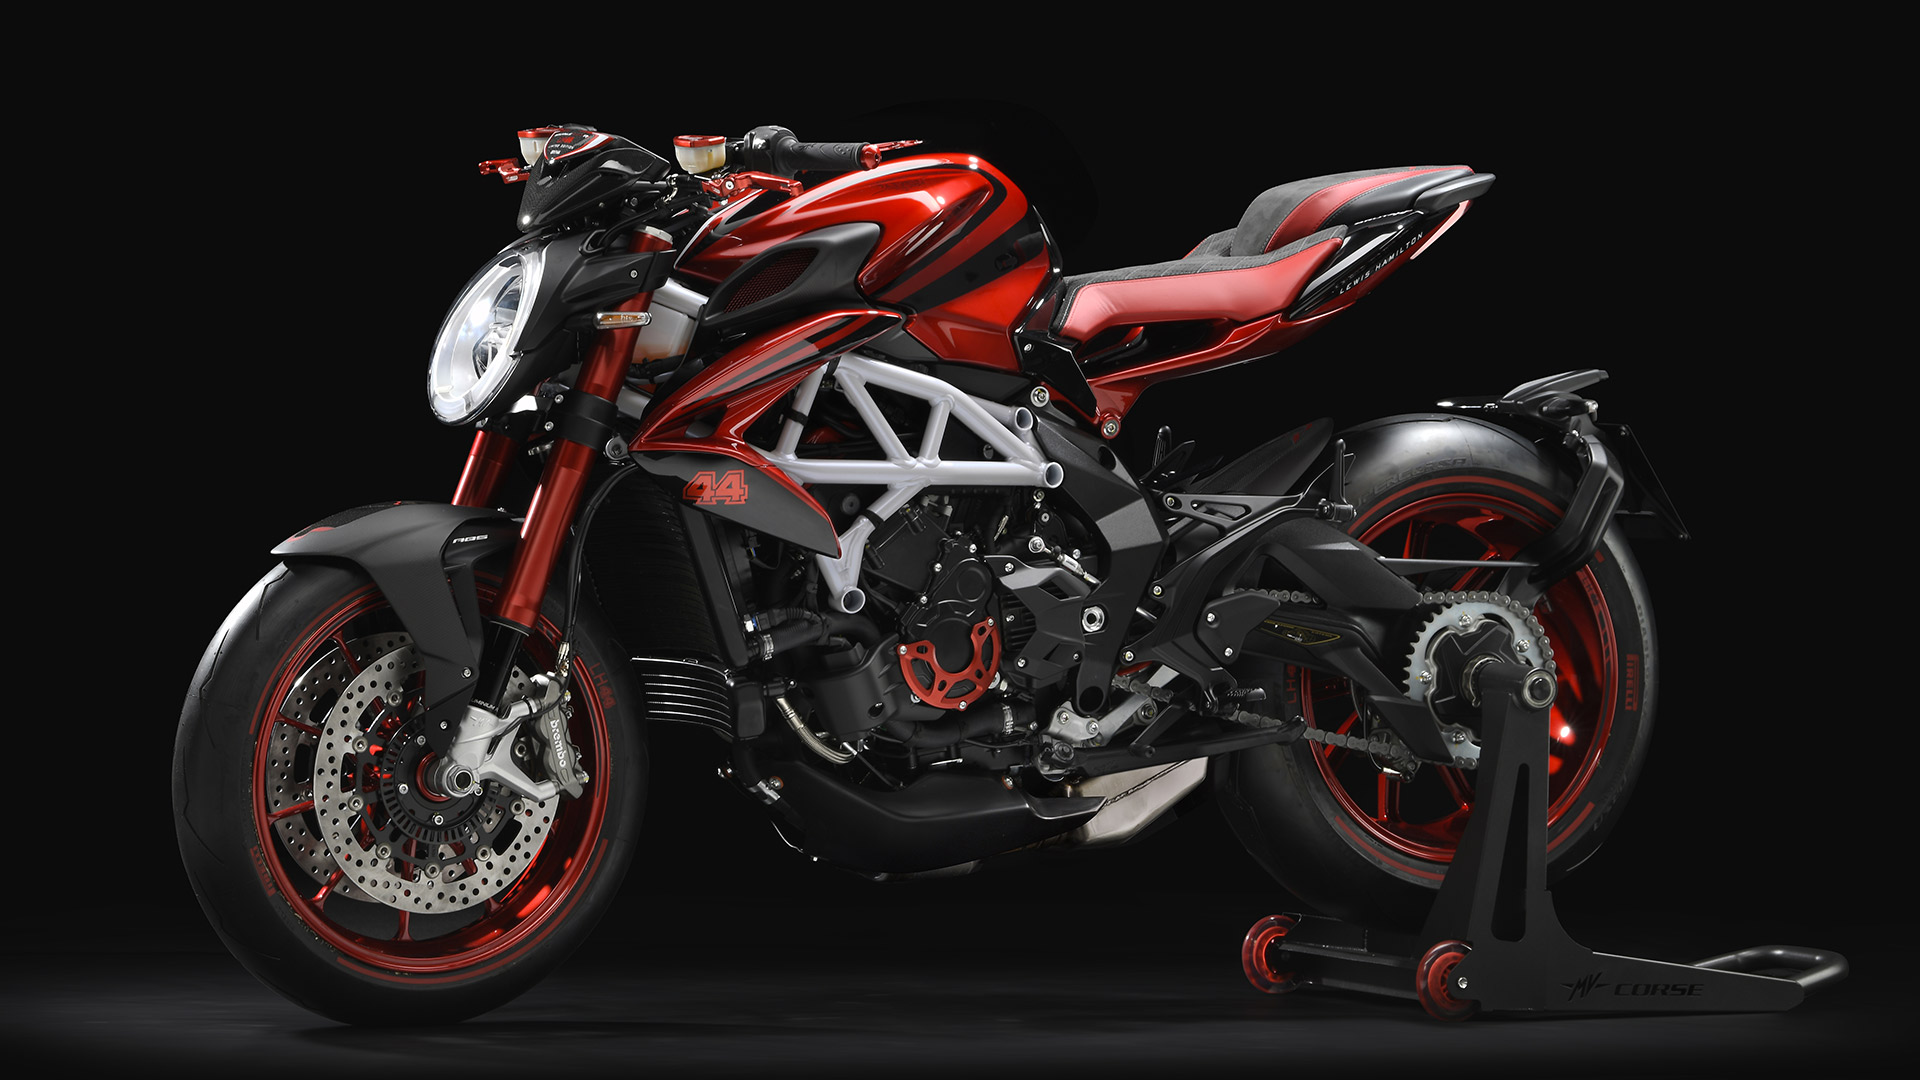 2018 mv agusta brutale 800 rr lh44 pictures, photos, wallpapers